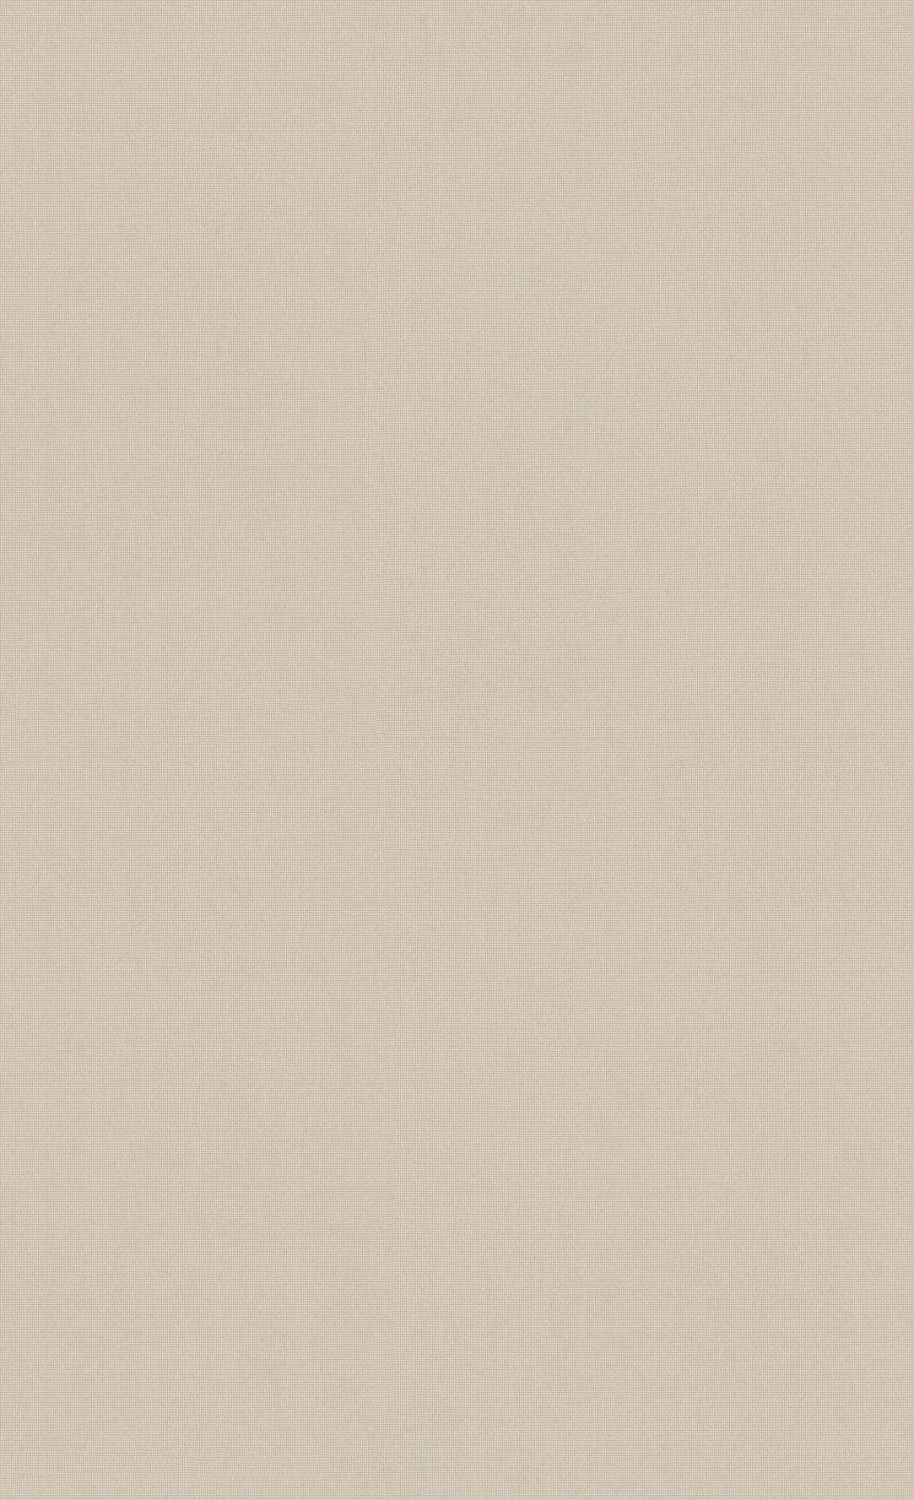 Ash Gray Minimalist Wallpaper C7276 | Commercial and Hospitality